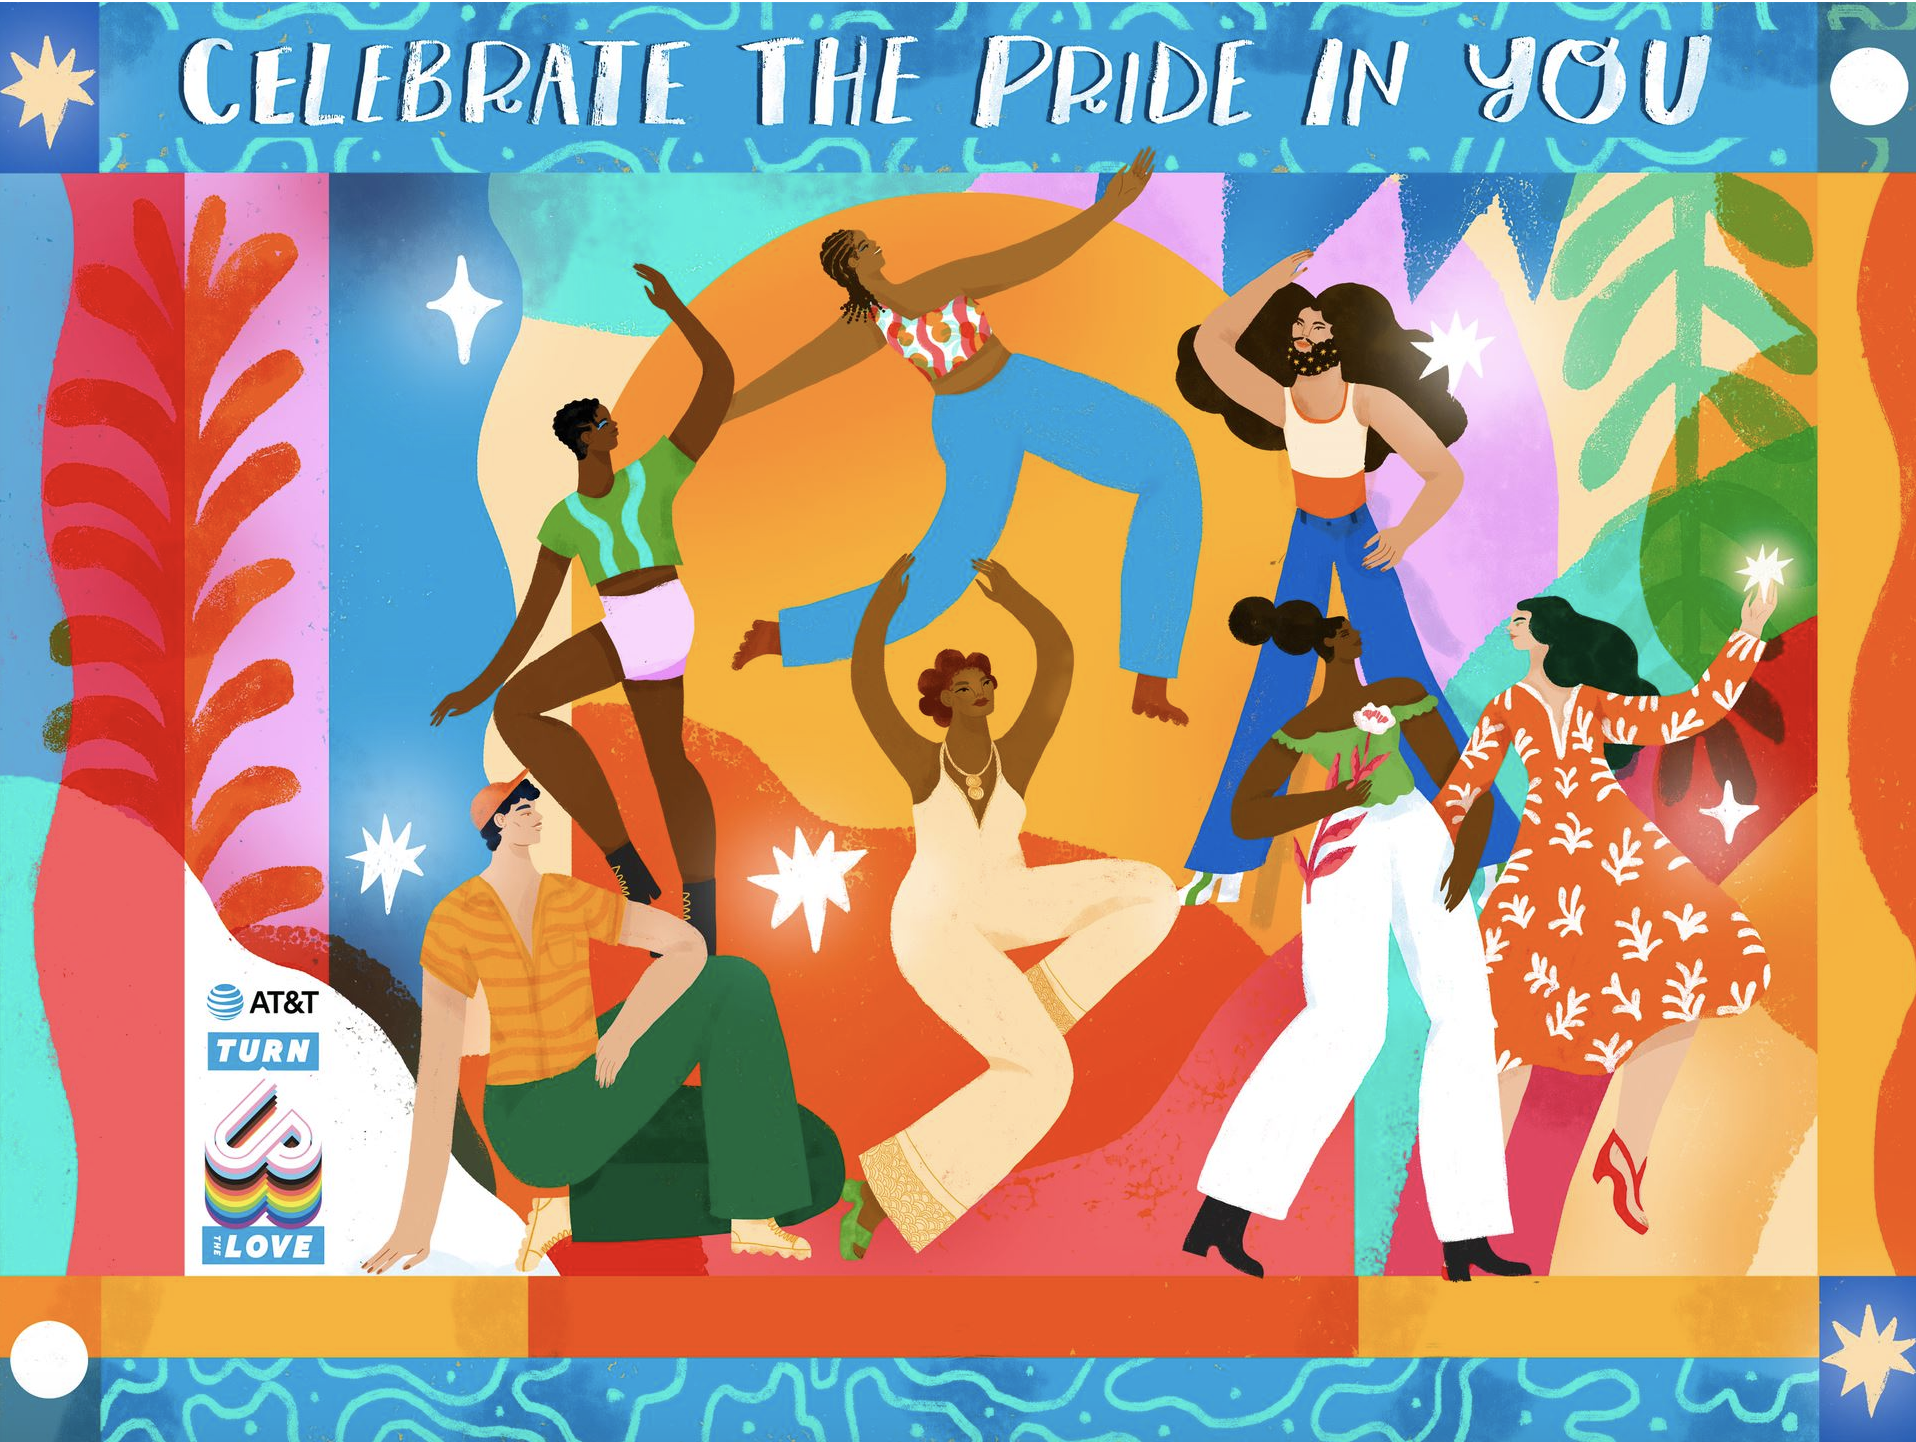 AT&T and Loveis Wise celebrate the pride in you.